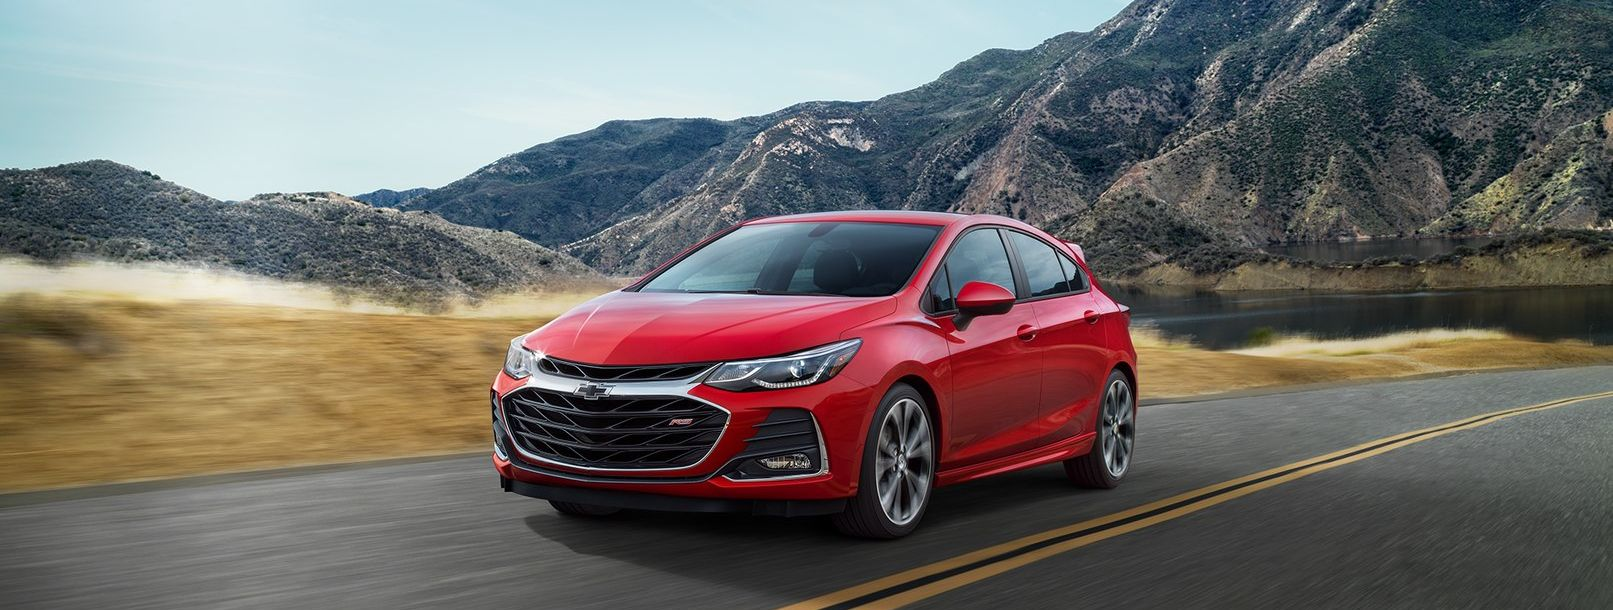 Test Drive a Chevy Cruze!